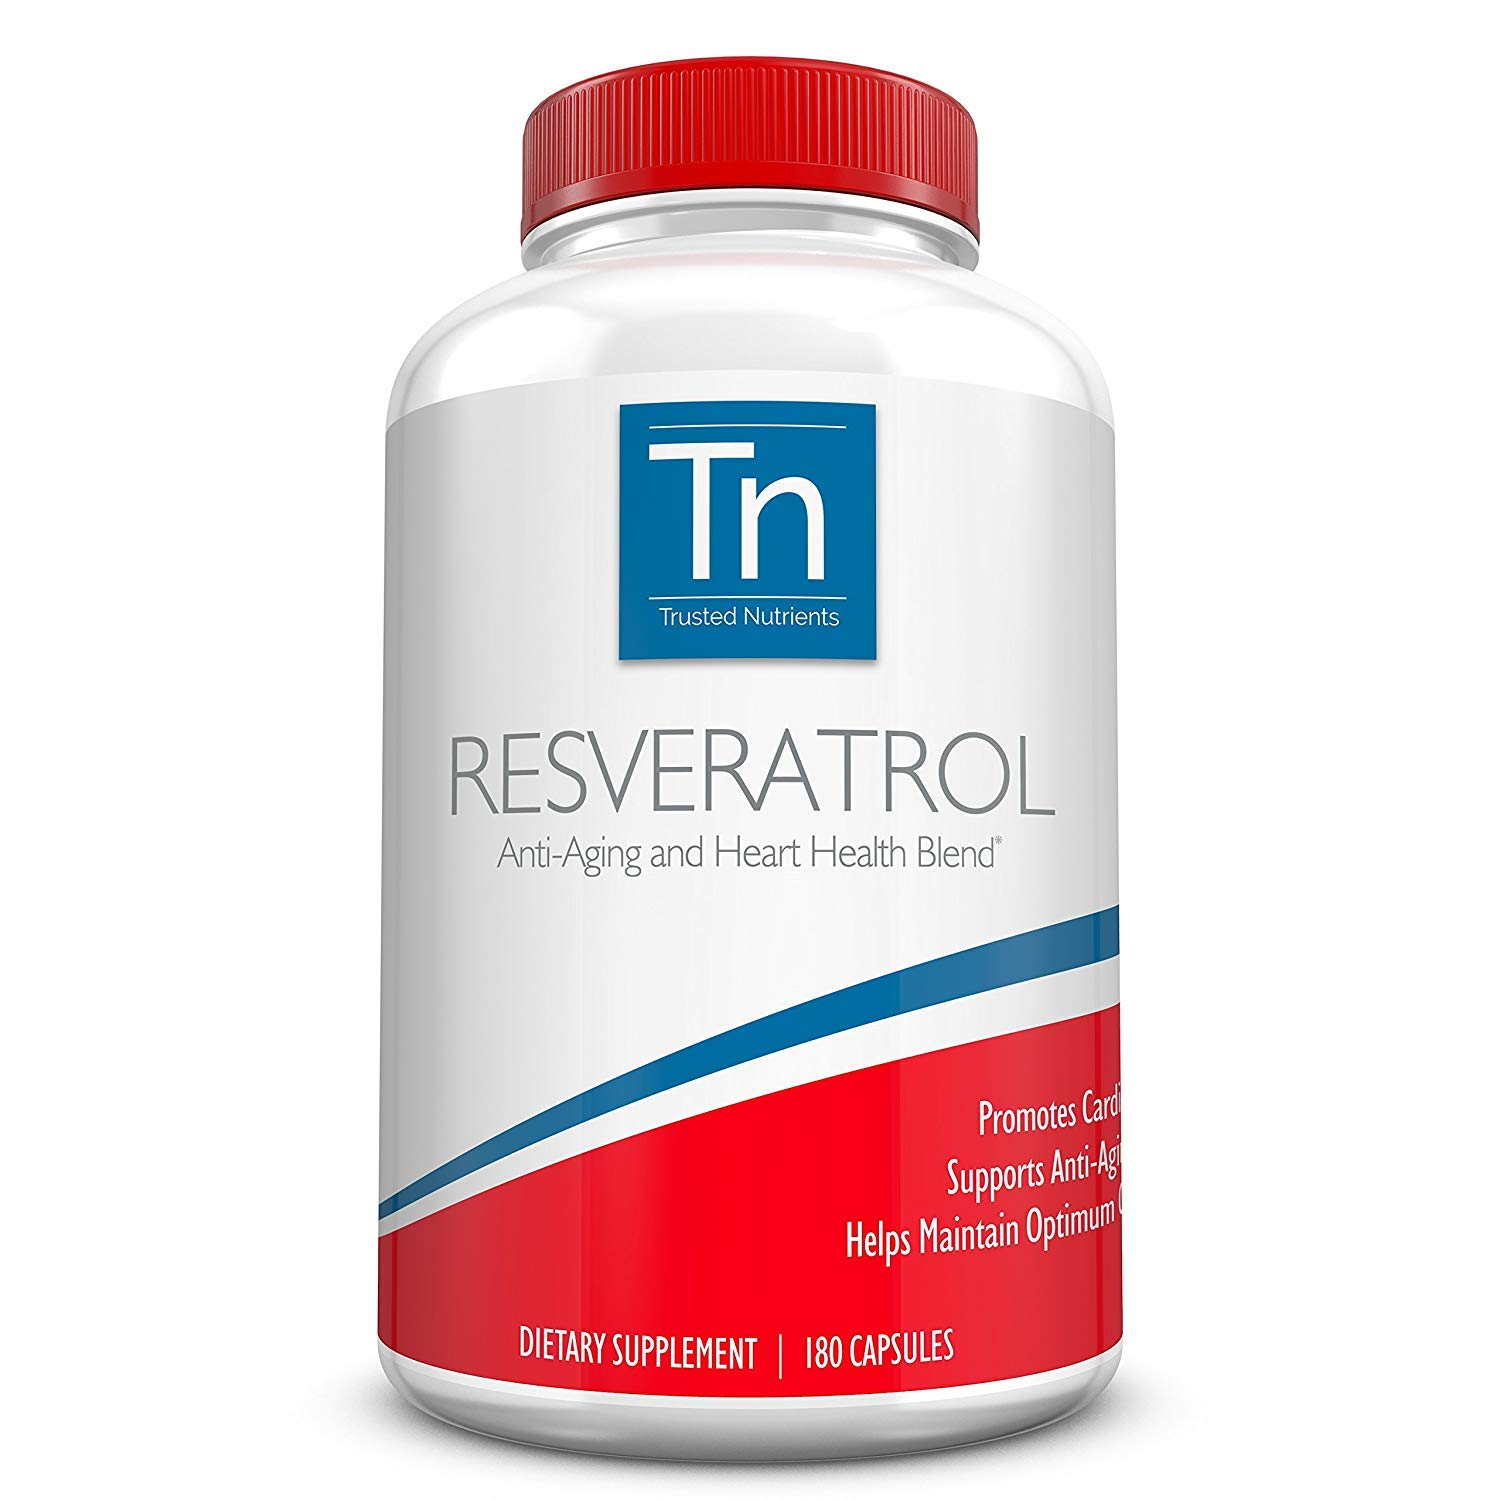 Trusted Nutrients Resveratrol Supplement - Anti-Aging and Heart Health Blend - with Trans Resveratrol, Grape Seed Extract, Acai Berry and Maqui Berry - 1000 mg 180 Vegetarian Capsules by Trusted Nutrients